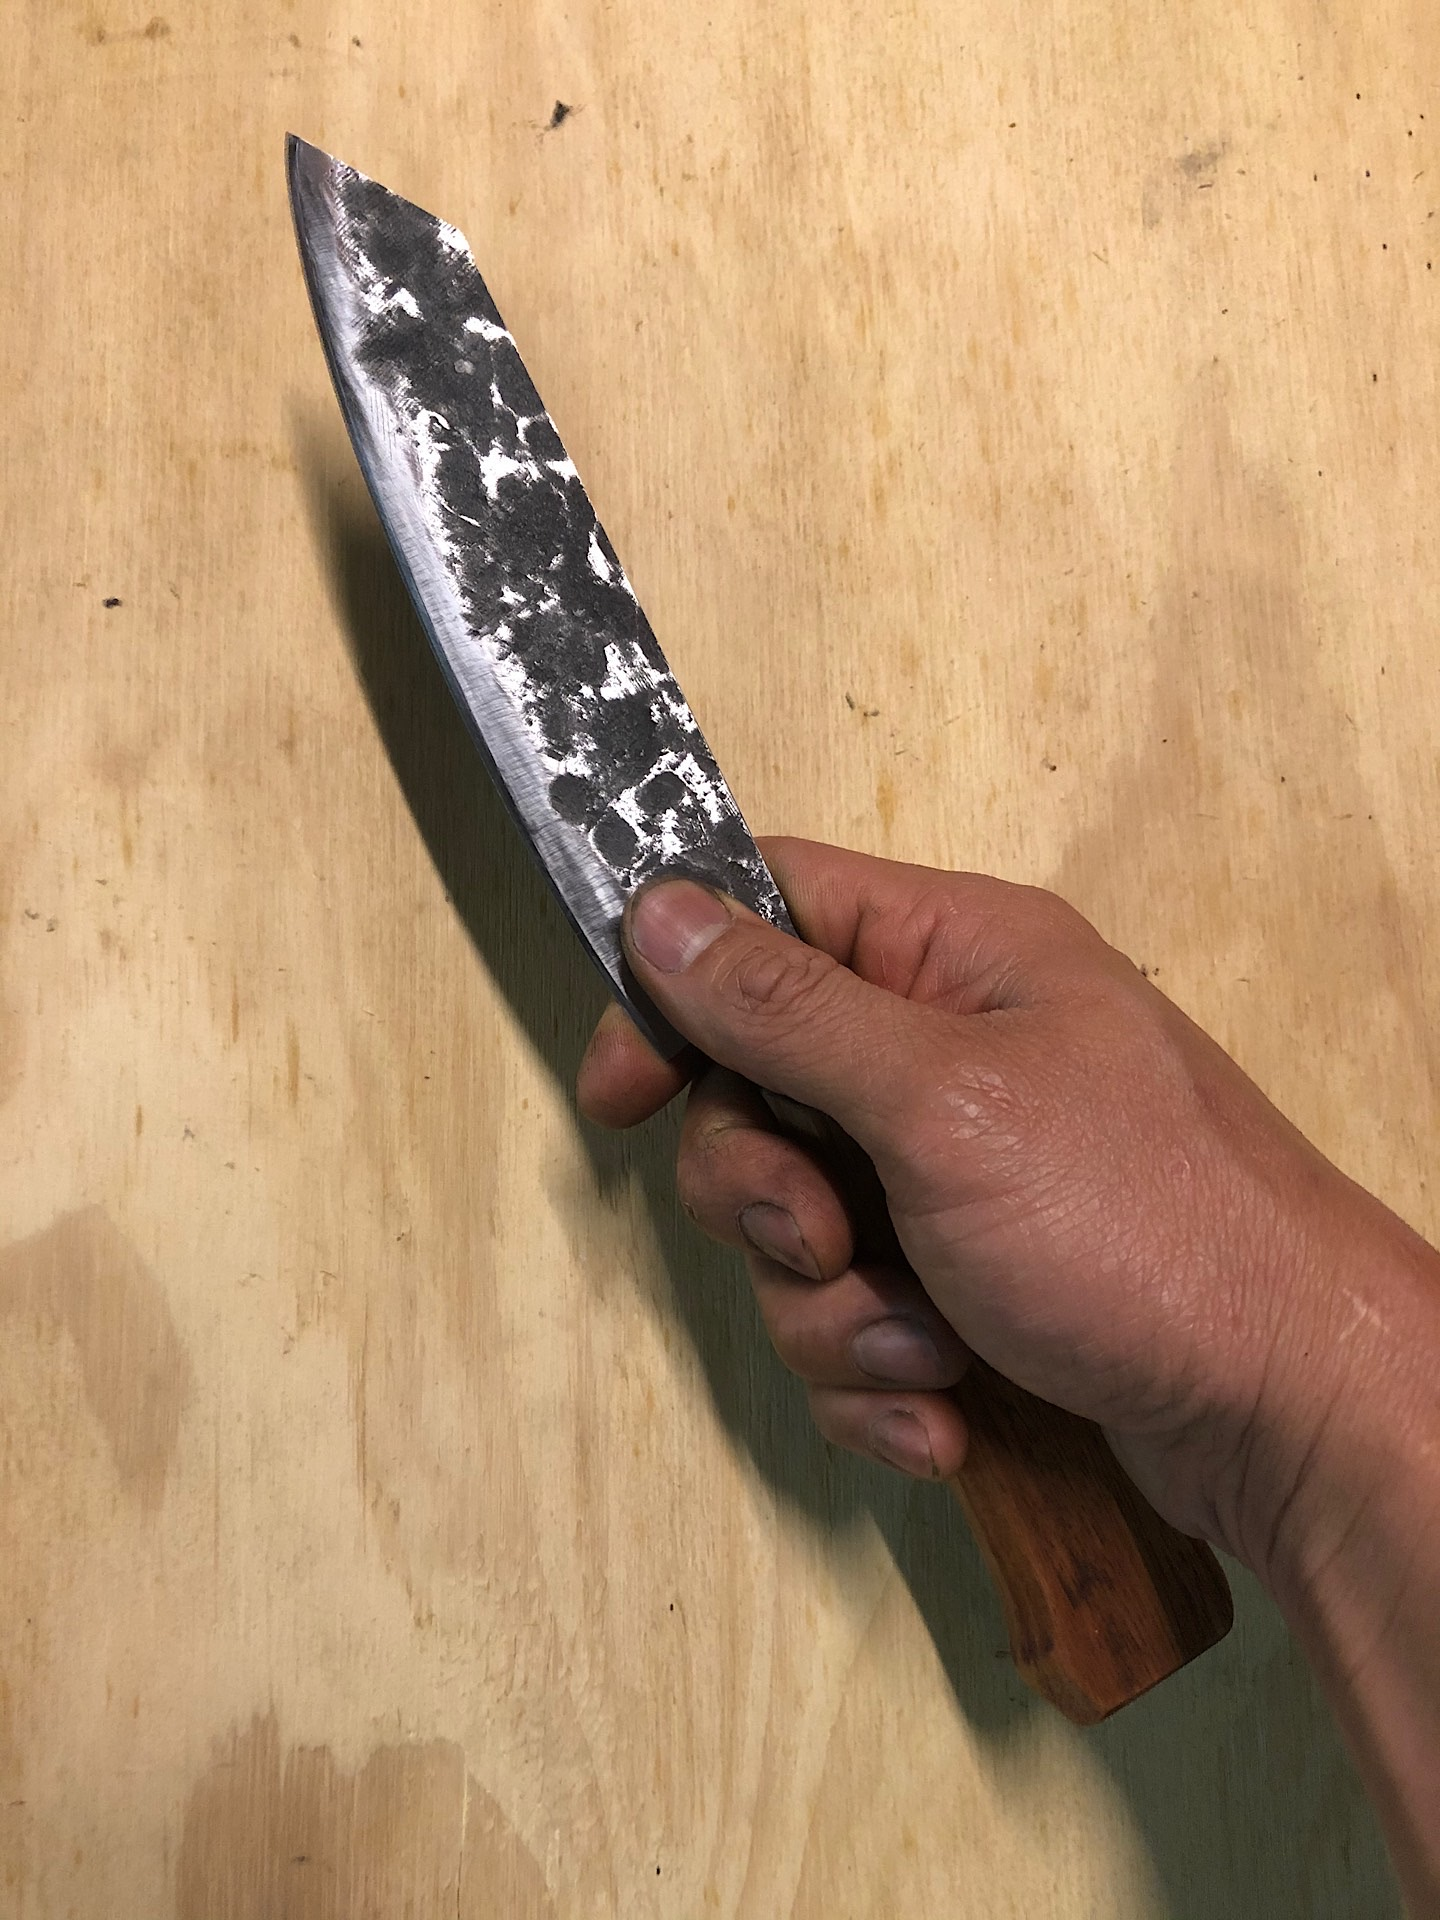 Holding my DIY chef's knife